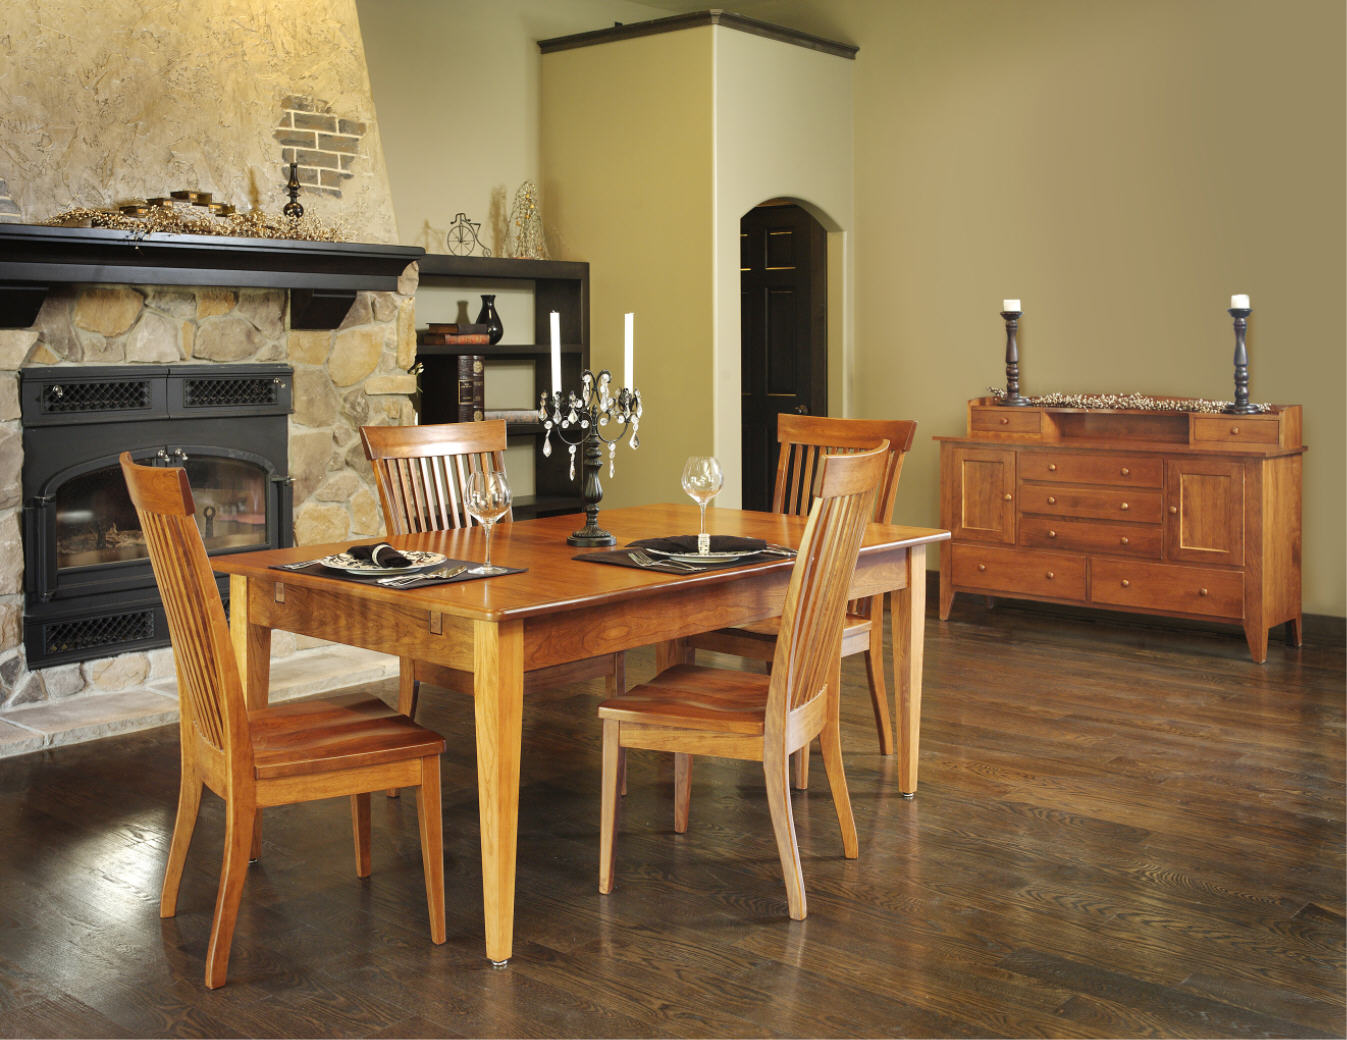 Dutch creek table 109 21000 19 dining furniture for Stone barn furnishings